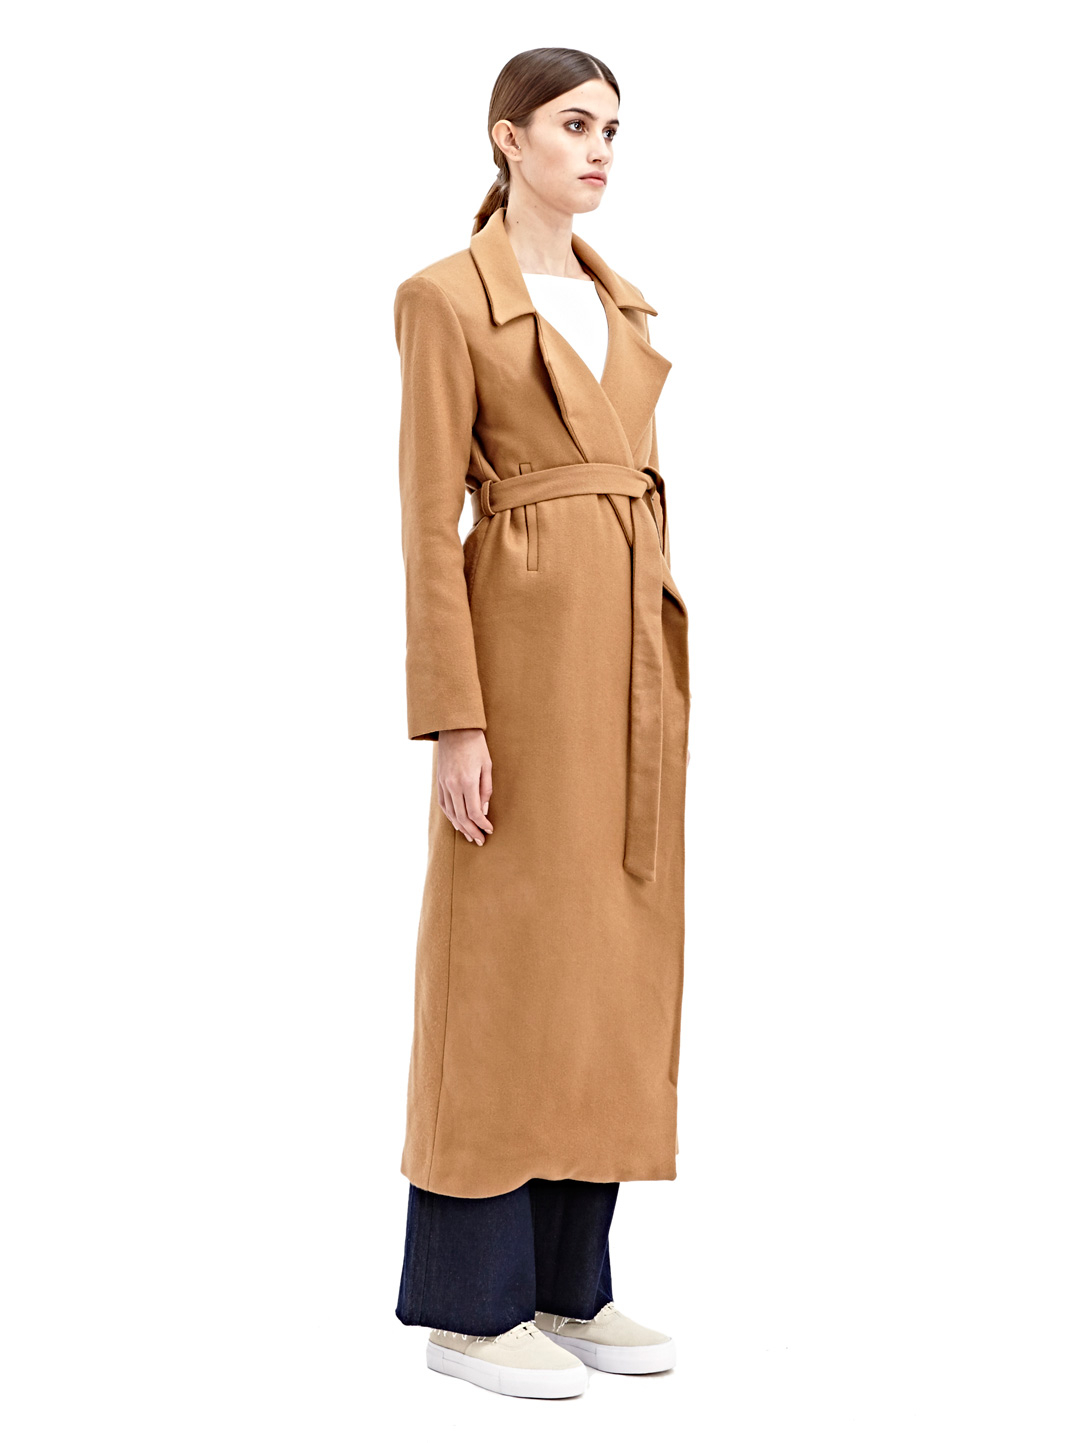 House Duster: Charlie May Womens Wool Duster Coat In Natural (Brown)